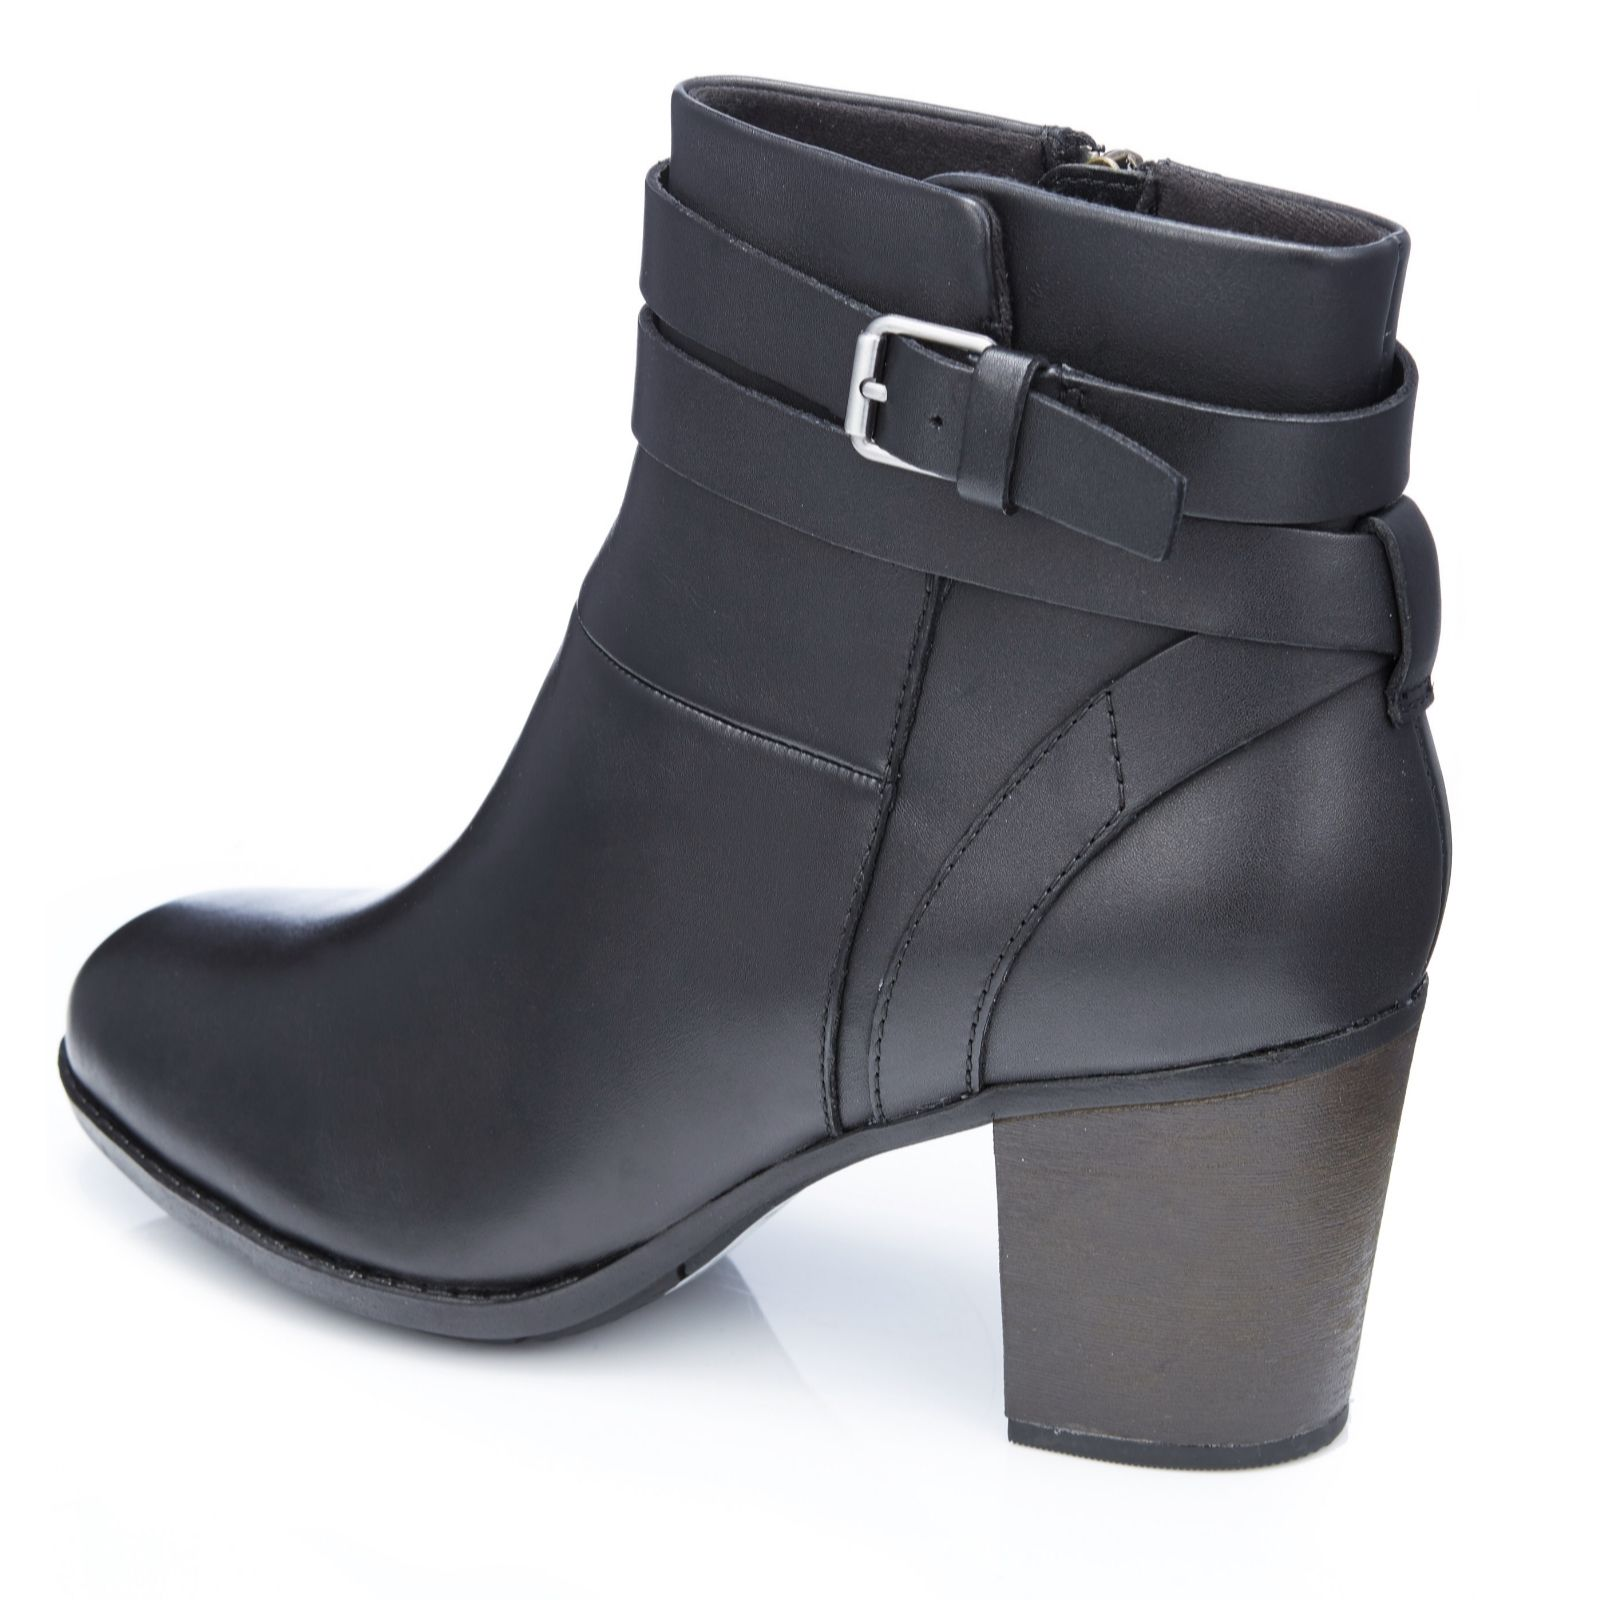 08a6629db7 Clarks Enfield River Ankle Boot with Buckle Detail Standard Fit - QVC UK